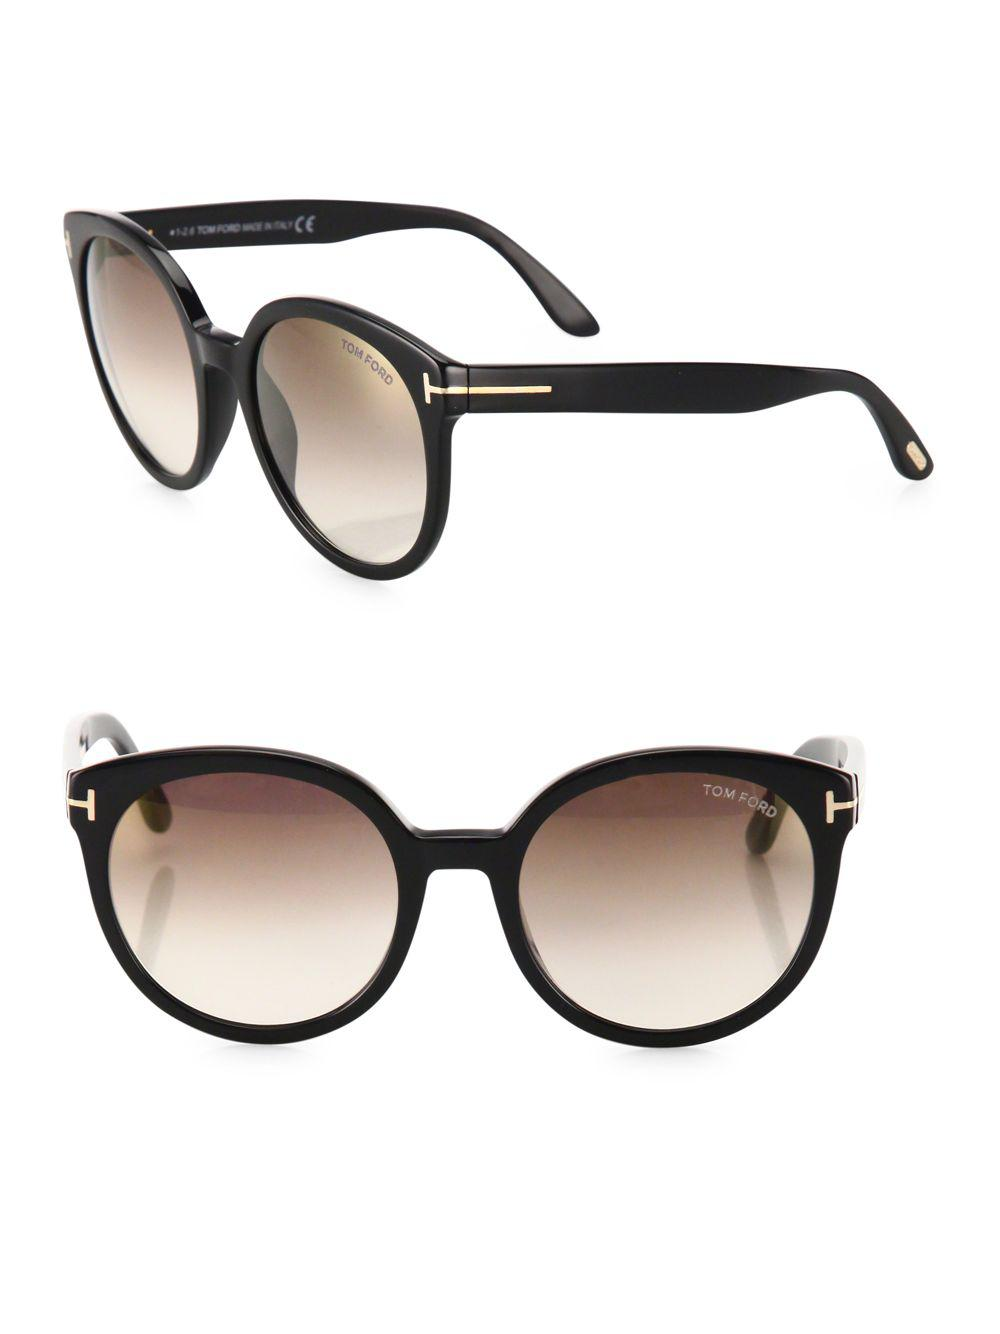 2988600ea6b Lyst - Tom Ford Philippa 55mm Mirrored Oversized Round Sunglasses in ...